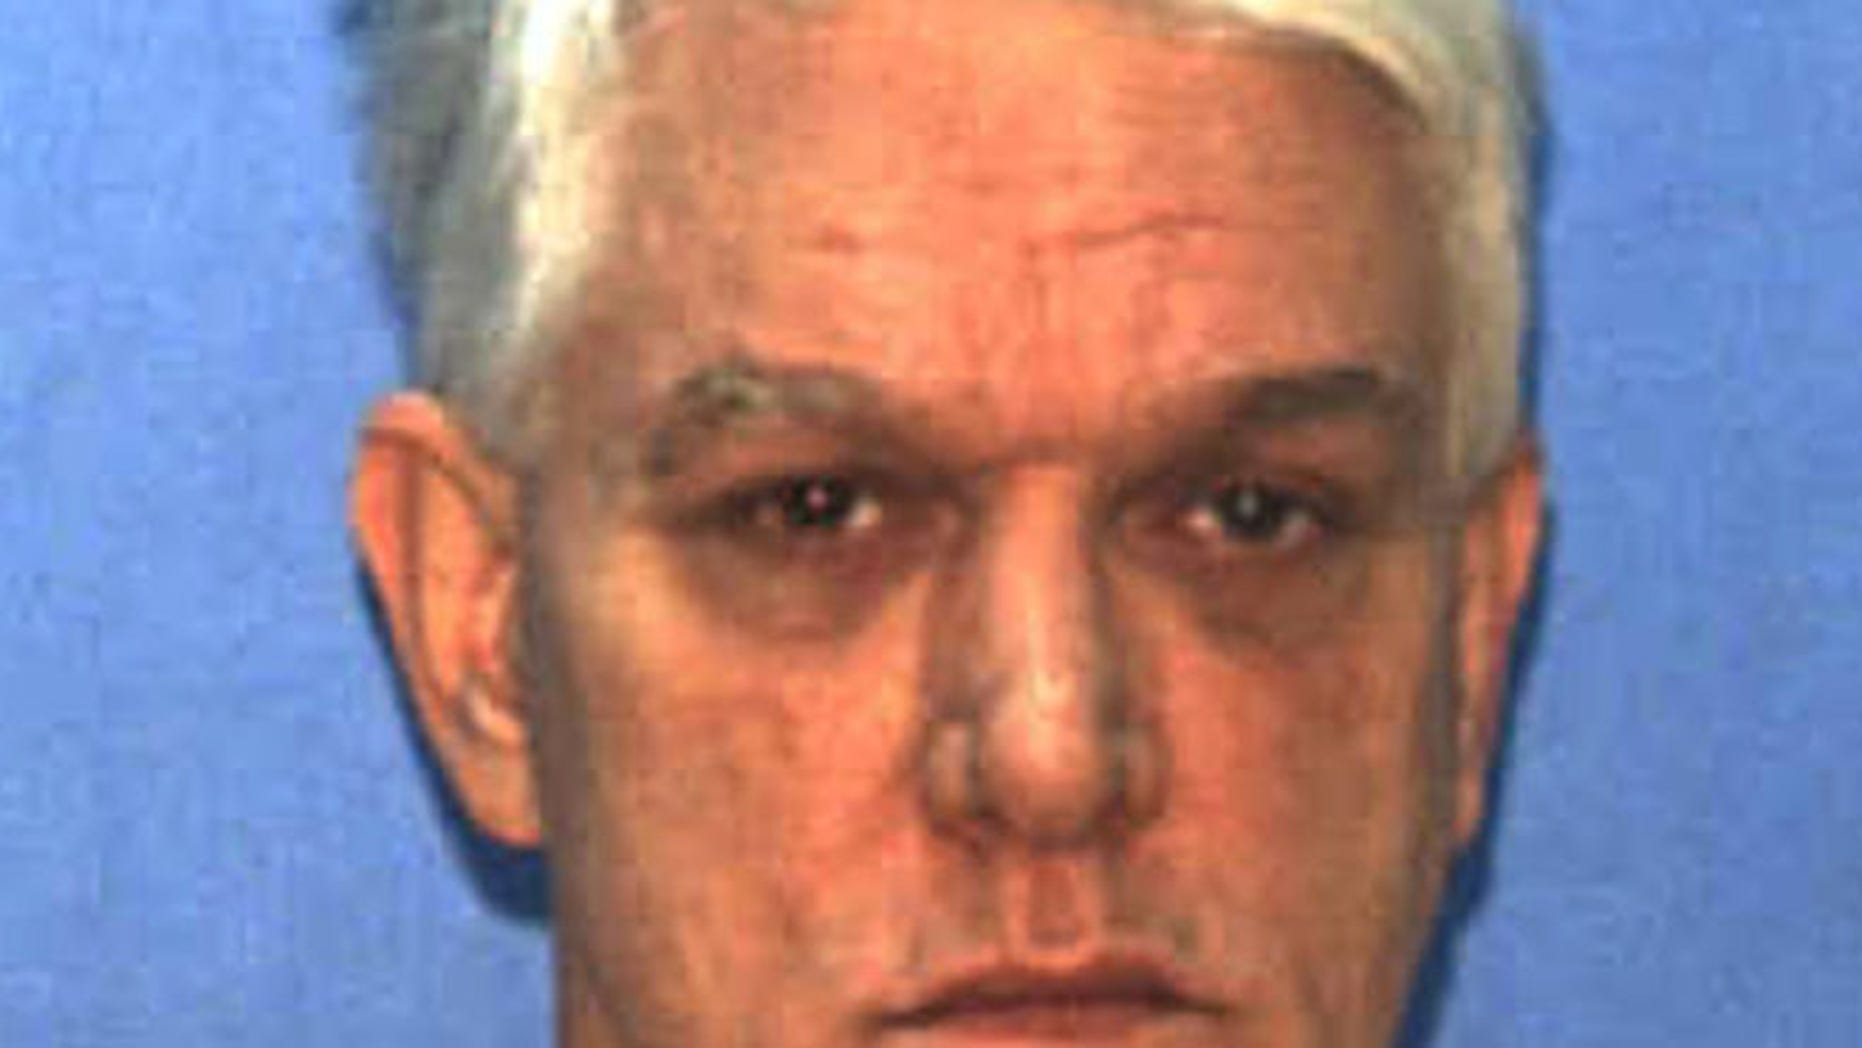 An undated photo provided by the Florida Department of Corrections shows death row inmate Elmer Carroll. Carroll is scheduled to be executed May 28, 2013, for the rape and murder of a 10-year-old girl in 1990.